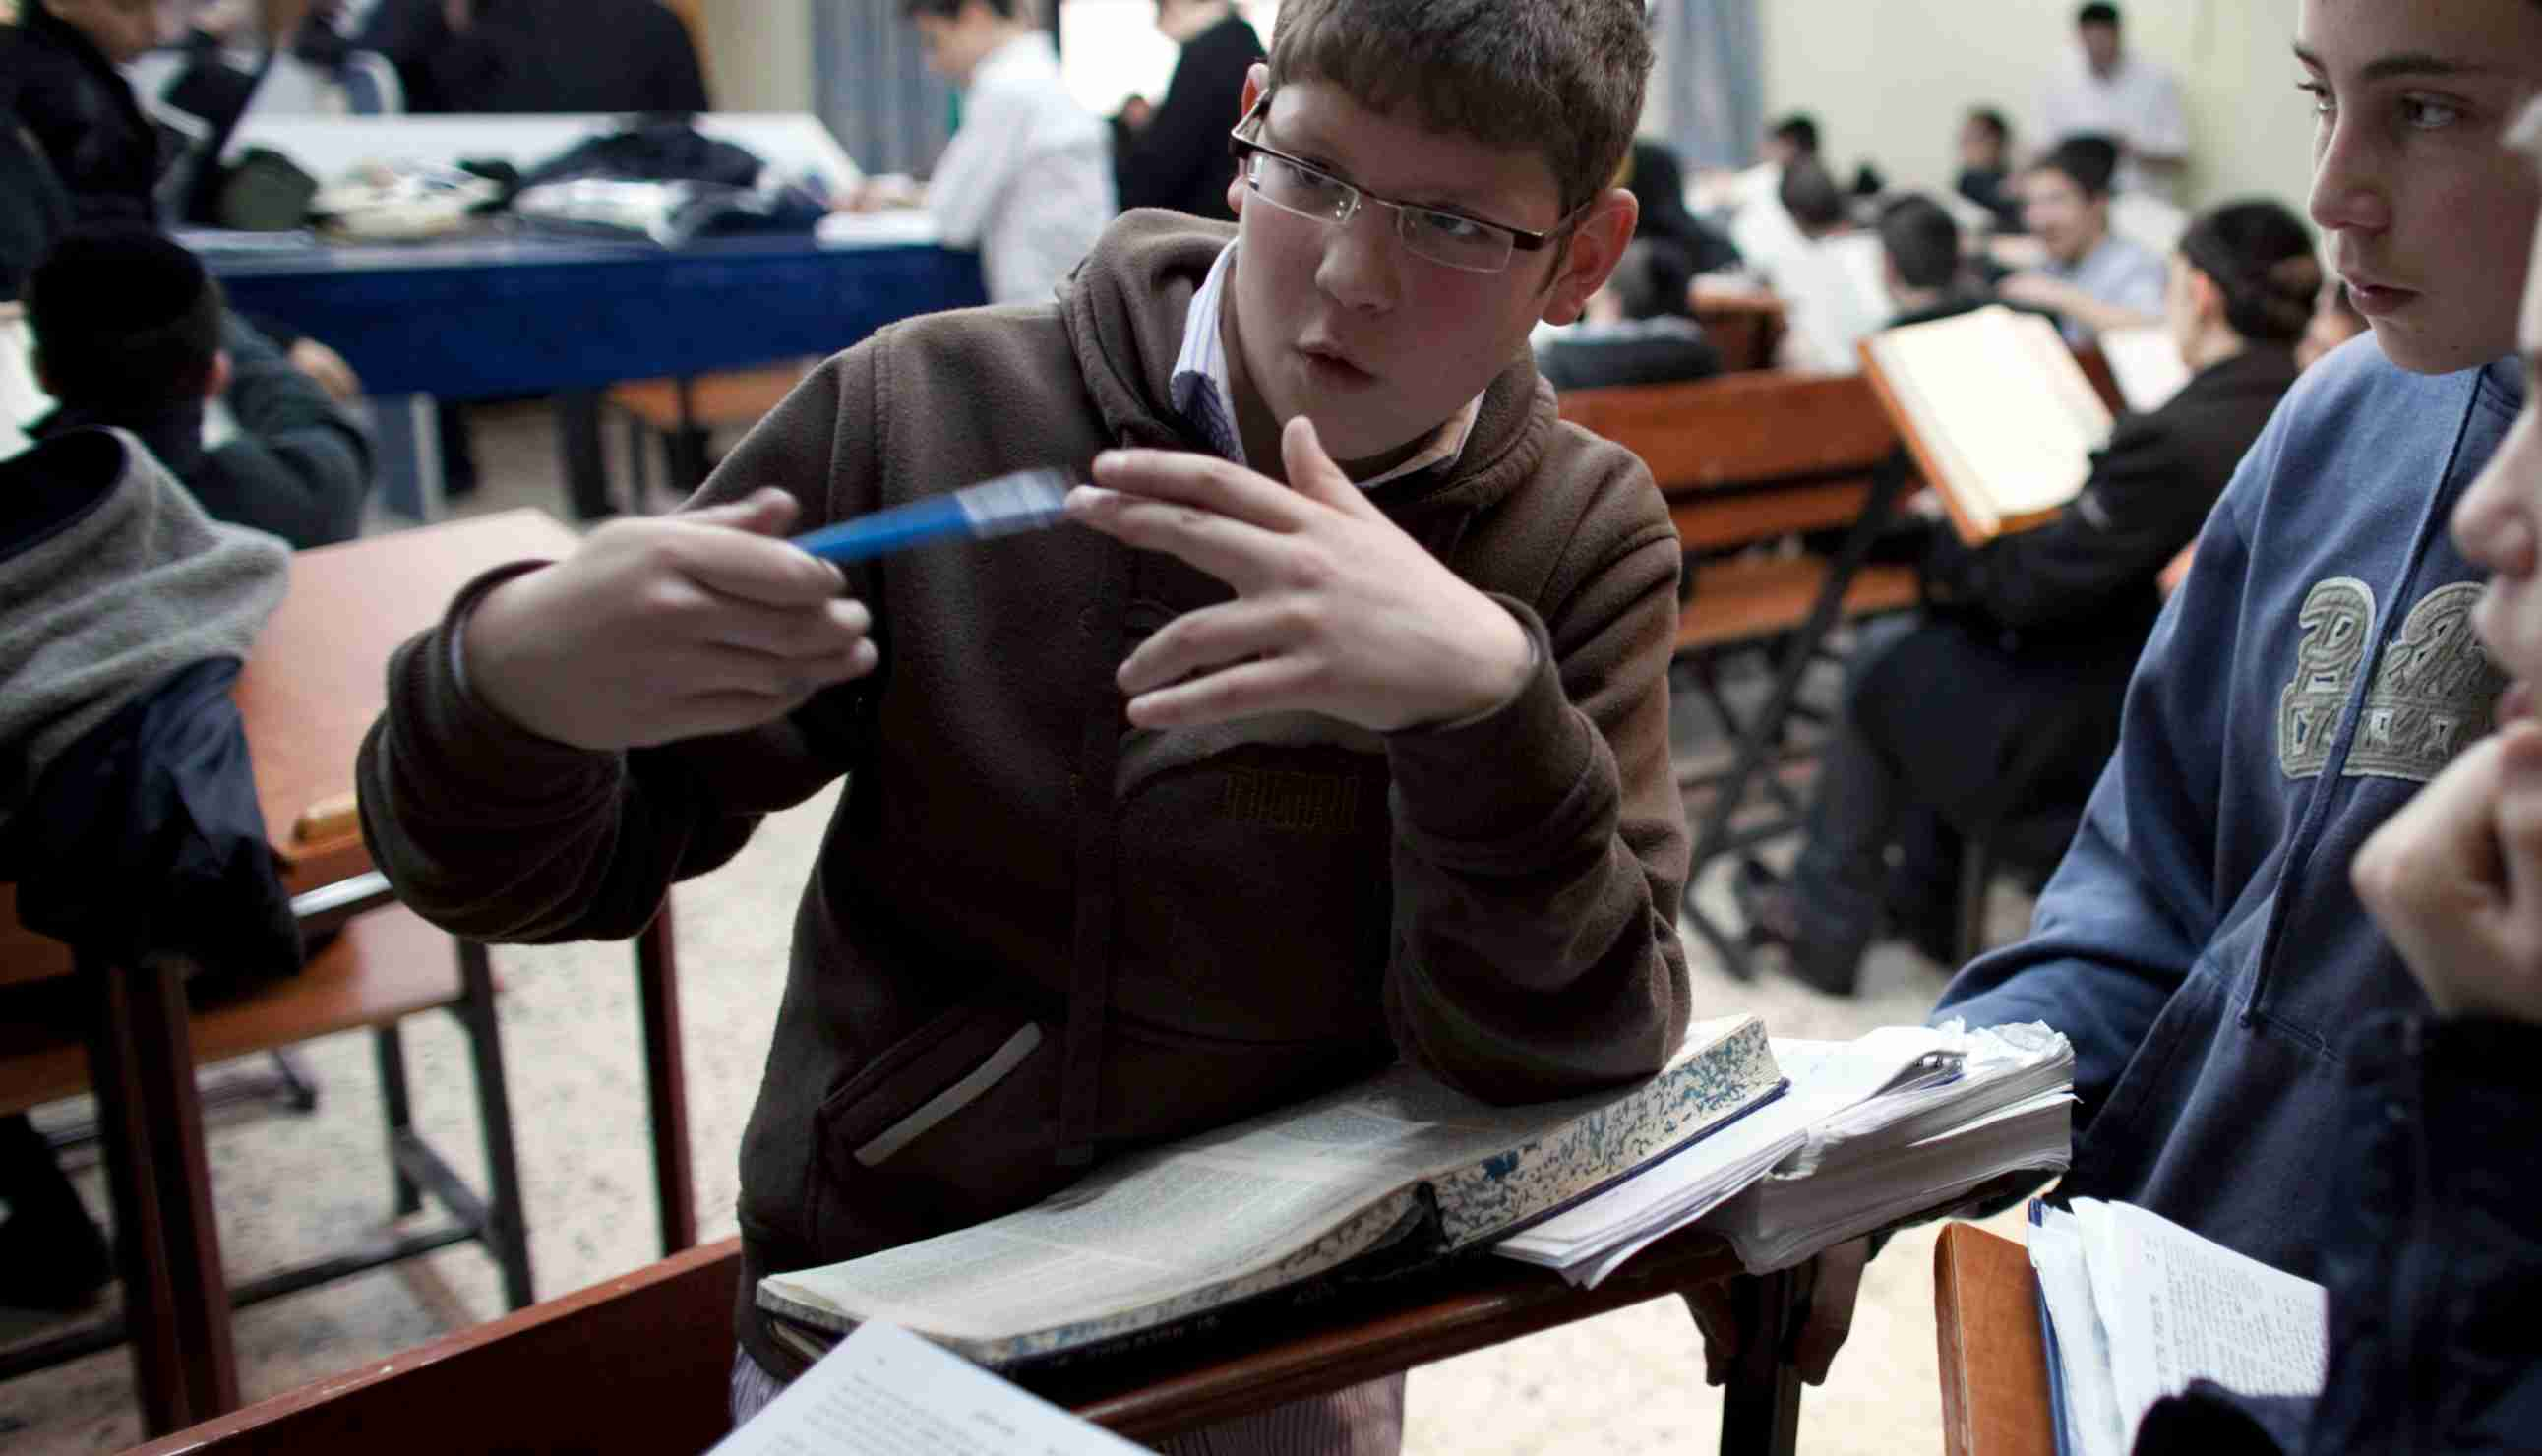 Ultra-Orthodox Jewish pupils discuss the Bible at the Nahardea school in Nehalim near Tel Aviv January 26, 2010. Inside a modern economy renowned for its innovative high-tech sector, they see a growing problem. Critics say the Jewish pupils who attend ultra-Orthodox schools can recite chapter and verse of the Bible, but most can't spell the name of their largest Arab neighbour, Egypt, in English. Picture taken January 26, 2010. To match feature ISRAEL/EDUCATION REUTERS/Darren Whiteside (ISRAEL - Tags: EDUCATION RELIGION) - GM1E62G19C901